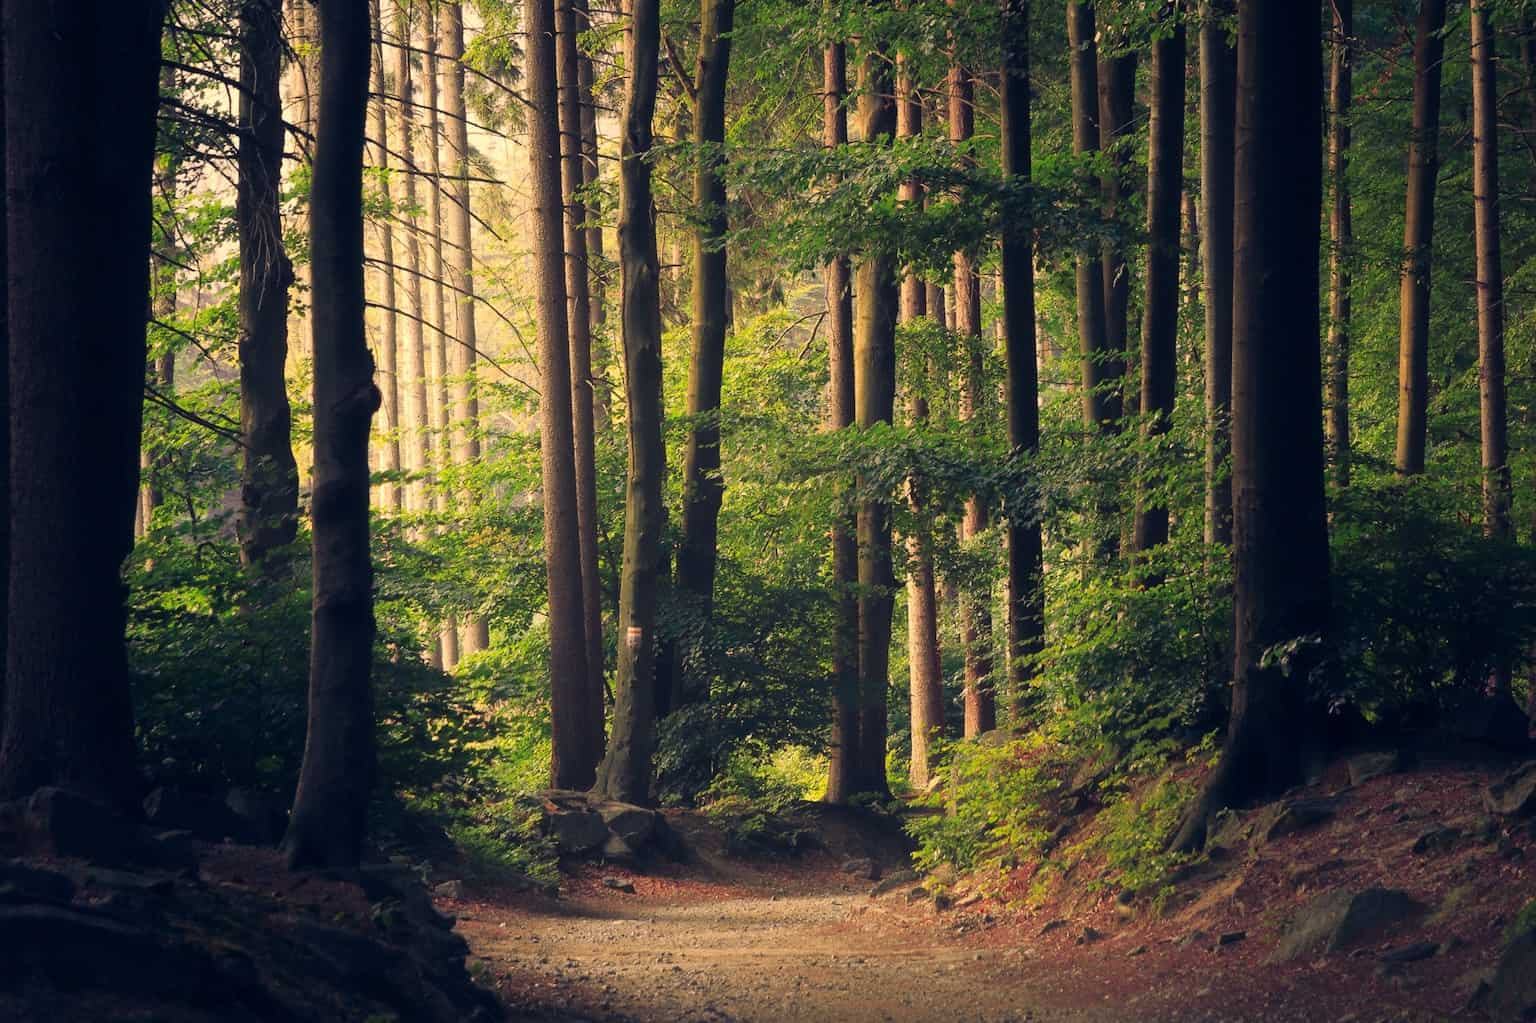 Does reforestation work? The reforestation impact is undeniable. But are there reforestation projects in the US? Countries like China, Brazil and Pakistan seem to have recognized the needs of reforestation. Has the rest of the world?